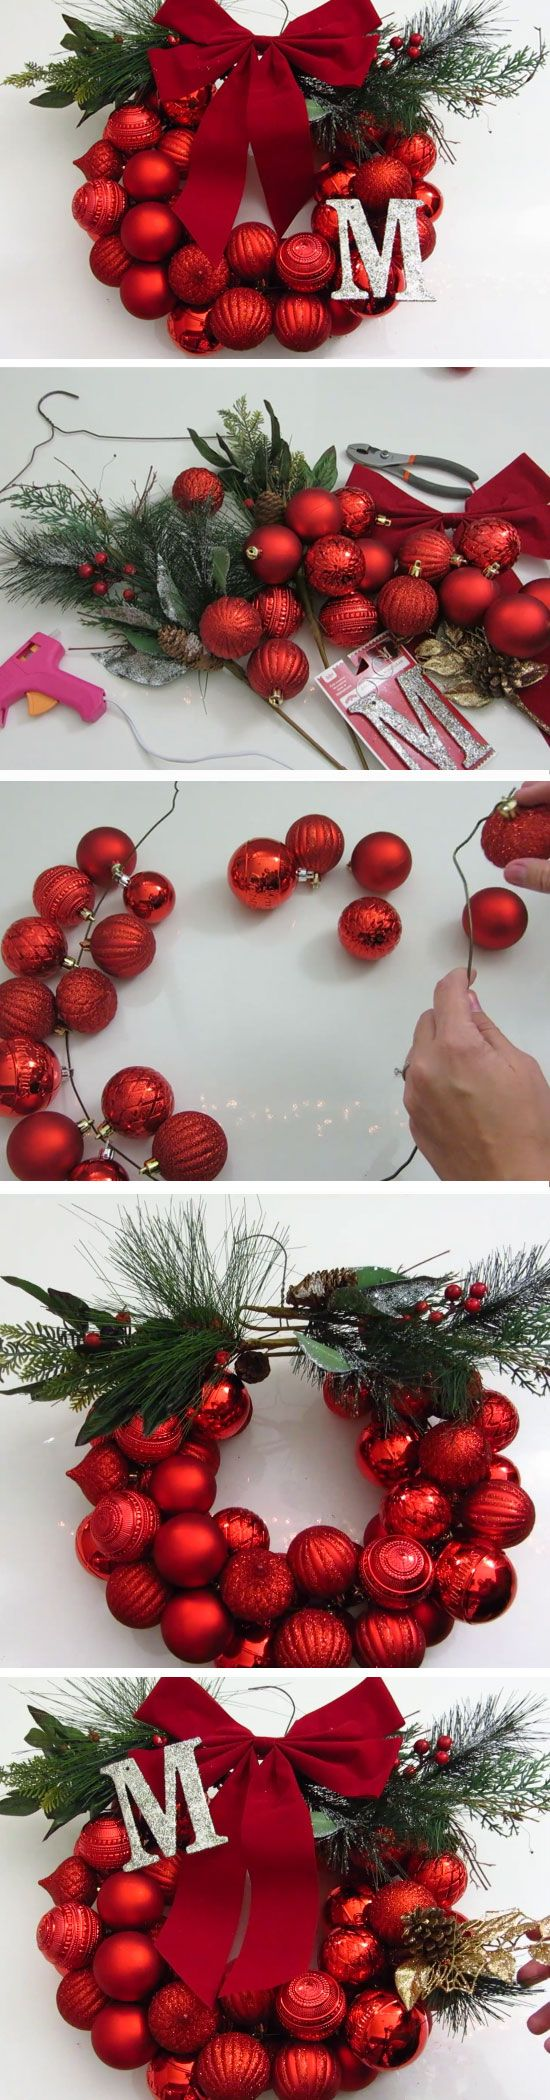 Monogram | Front Porch Christmas Decorations Ideas | Easy Outdoor Christmas Decorations Ideas